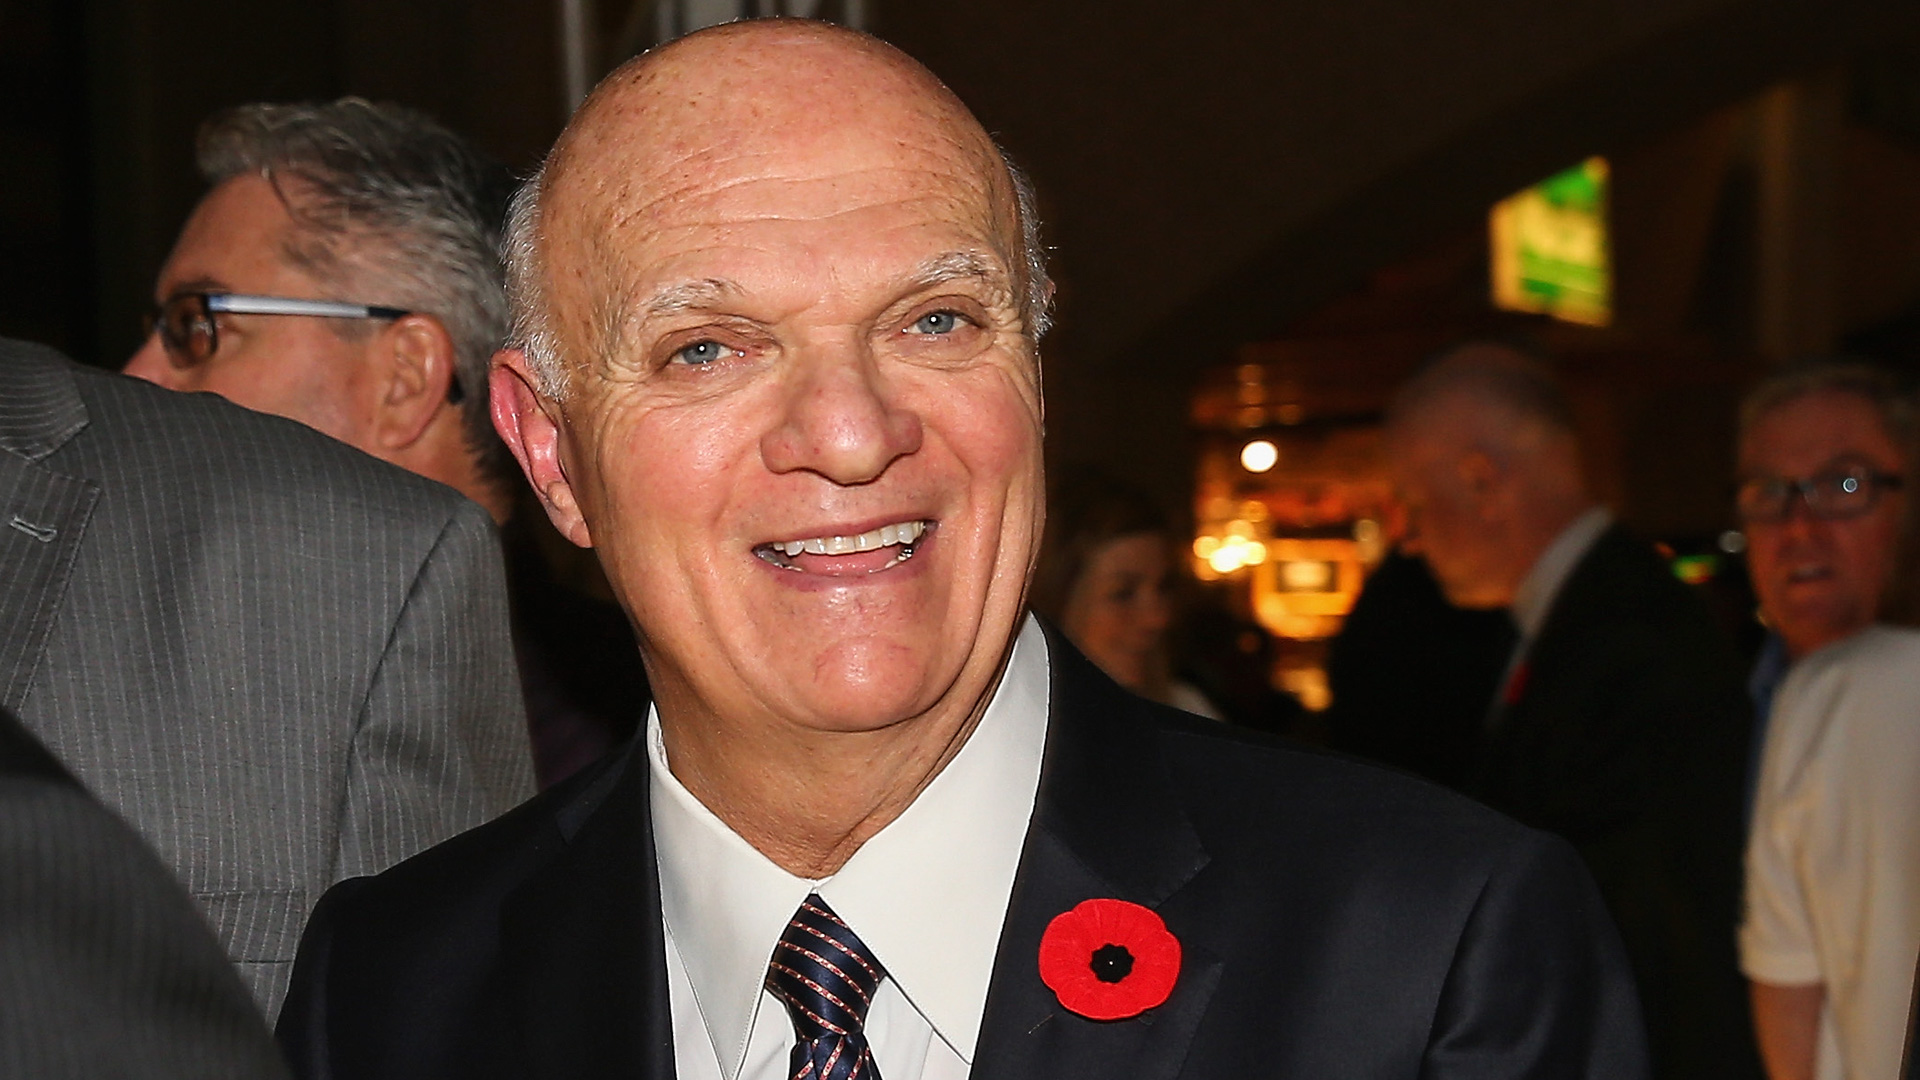 Lou-lamoriello-122215-getty-ftrjpg_16kvgu4ph0erg1w2pktfrxpw99